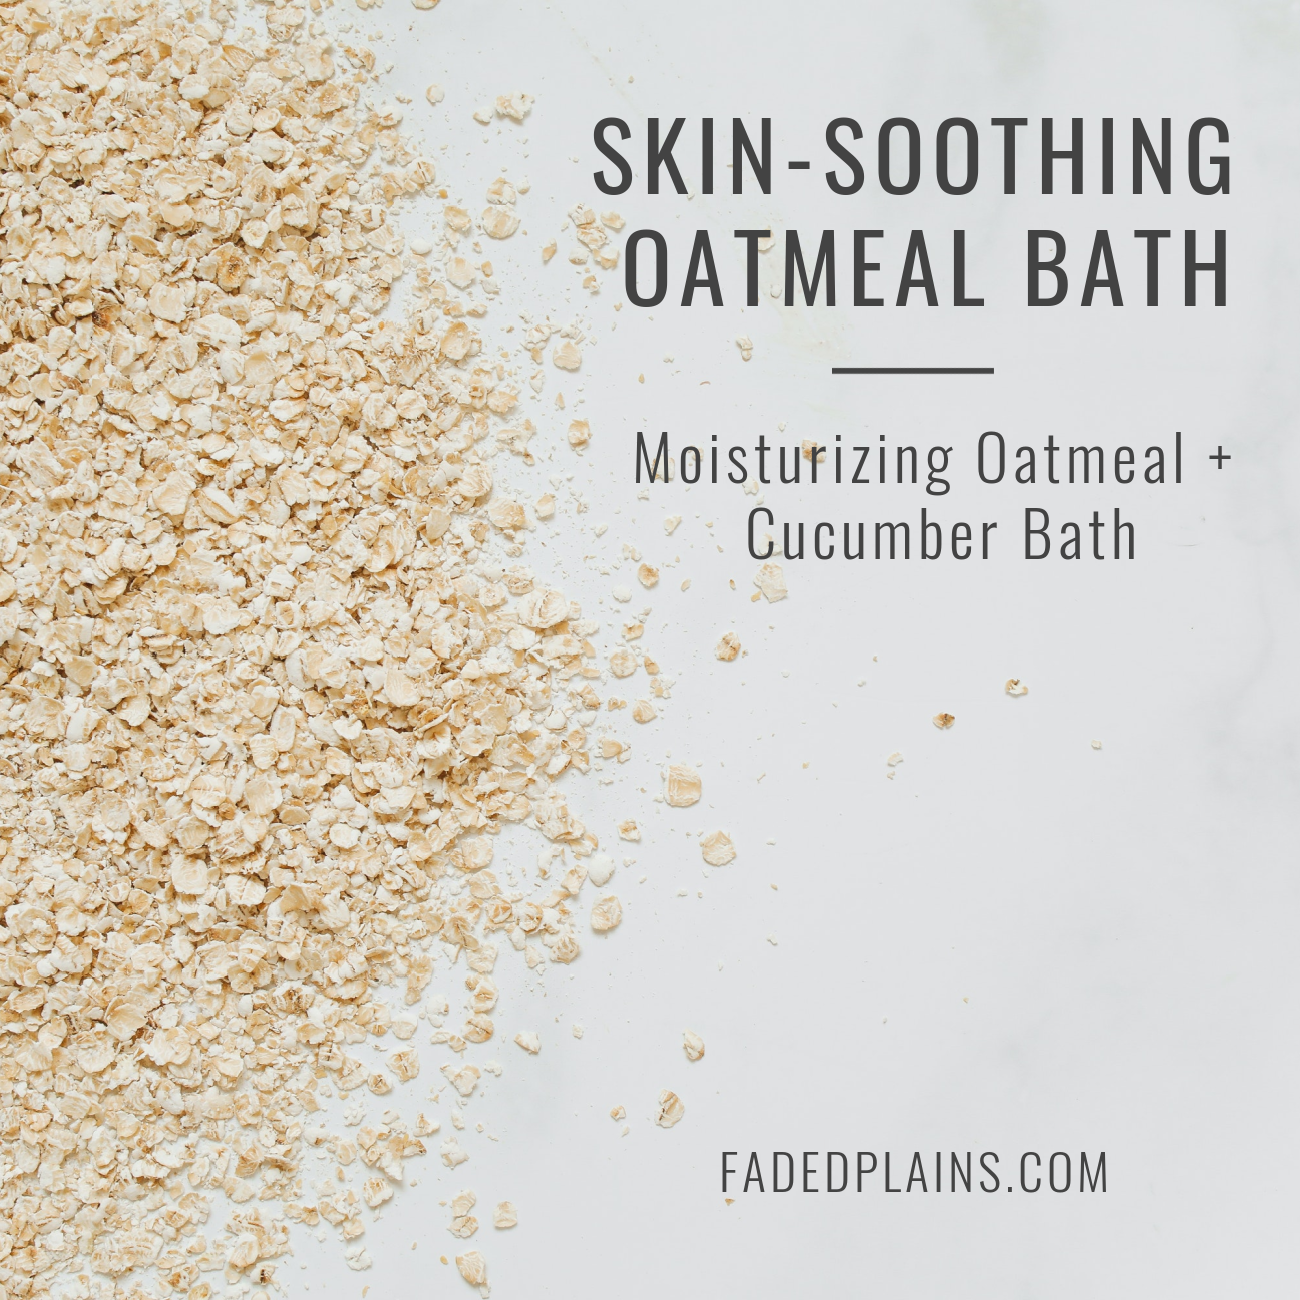 Skin-Soothing Oatmeal Bath